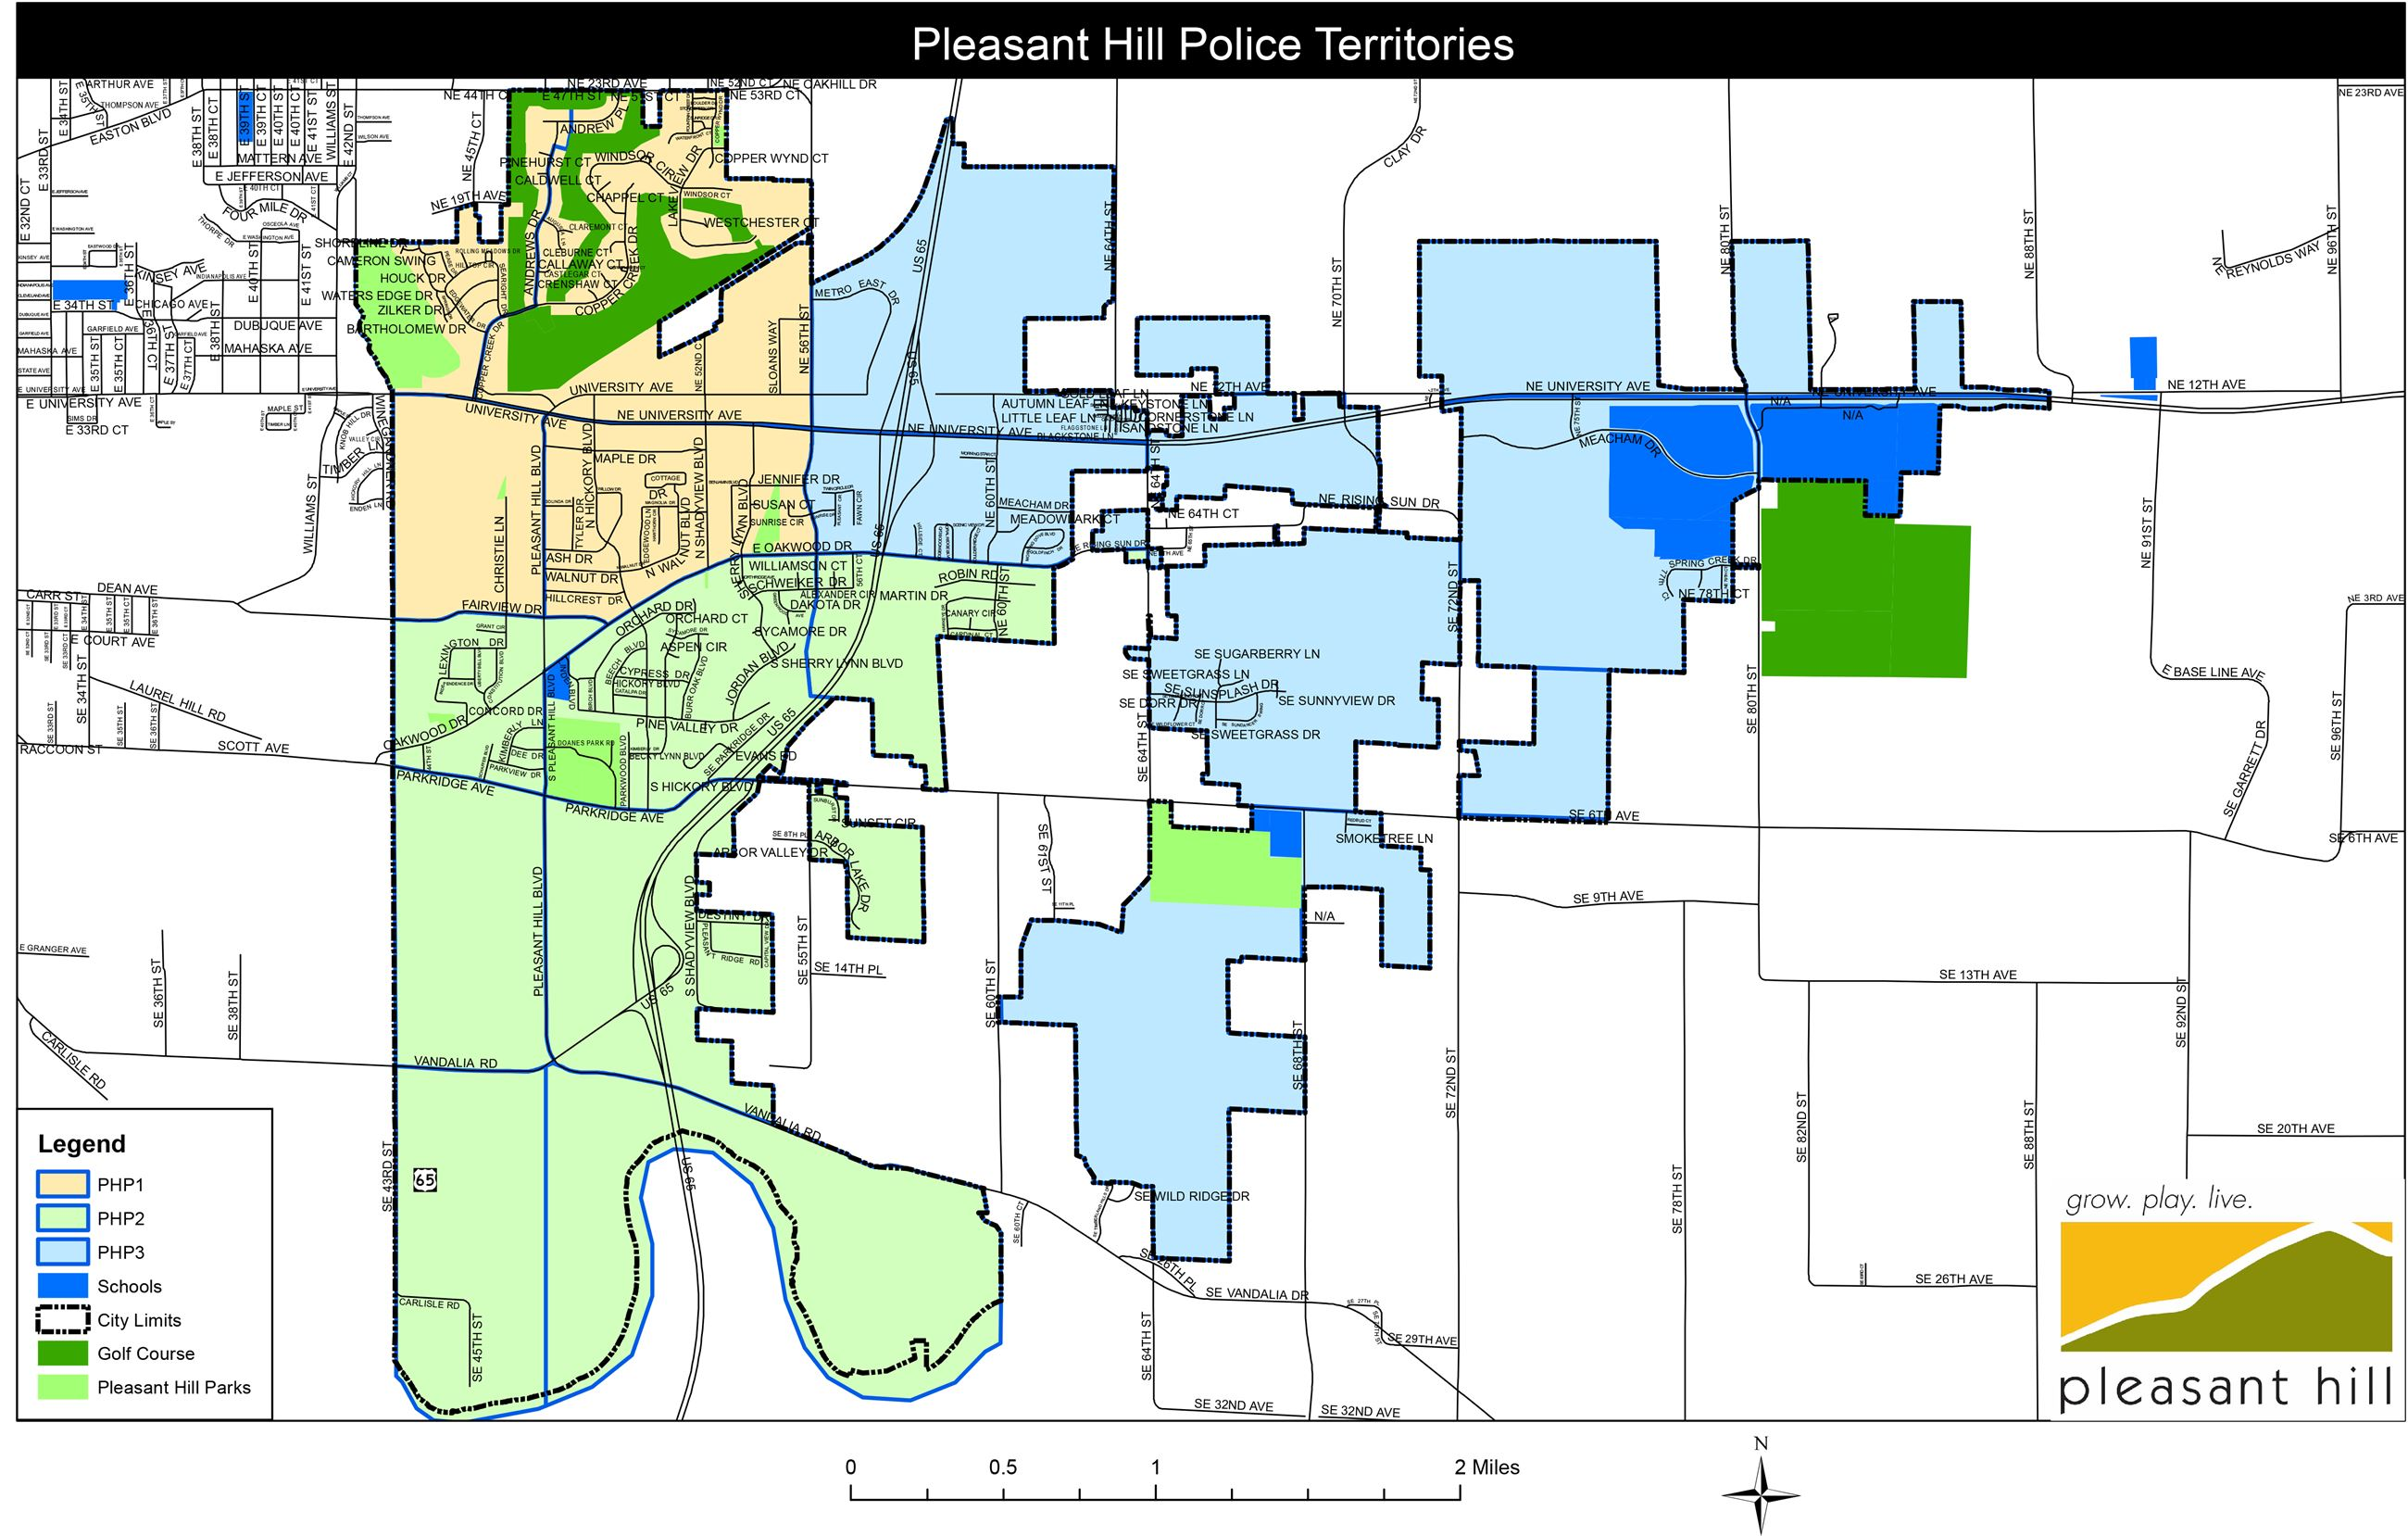 Community Policing Territories for the City of Pleasant Hill